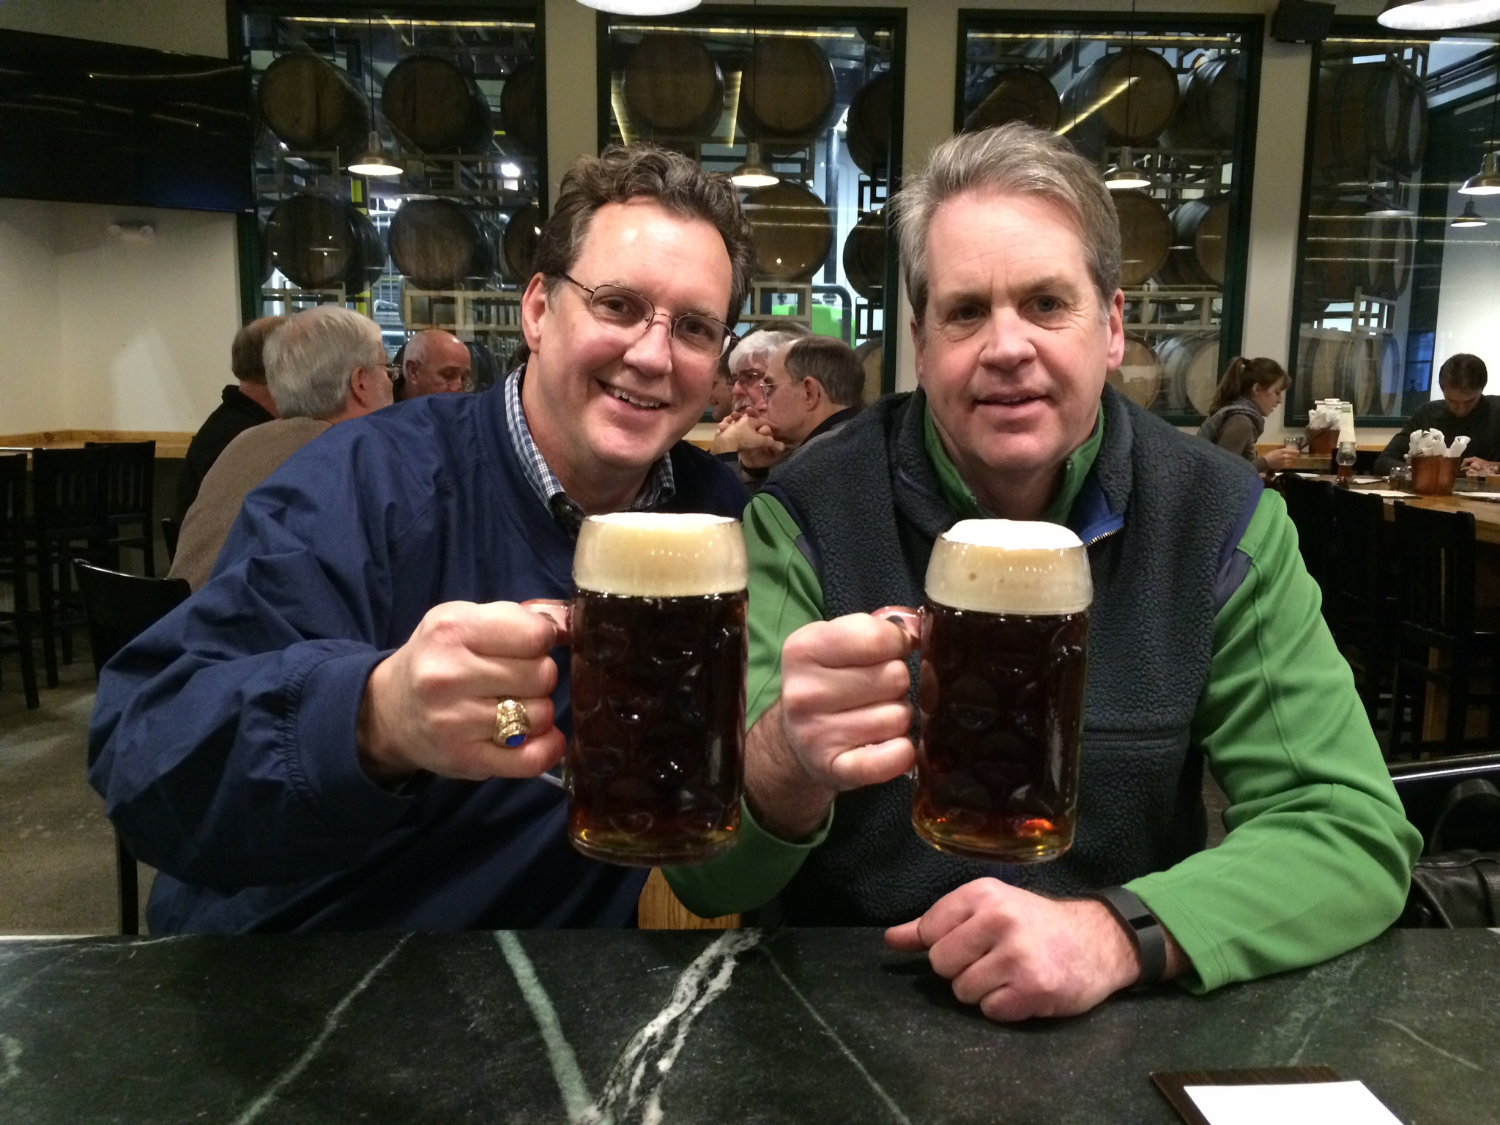 Mike & Mark - Cheers!